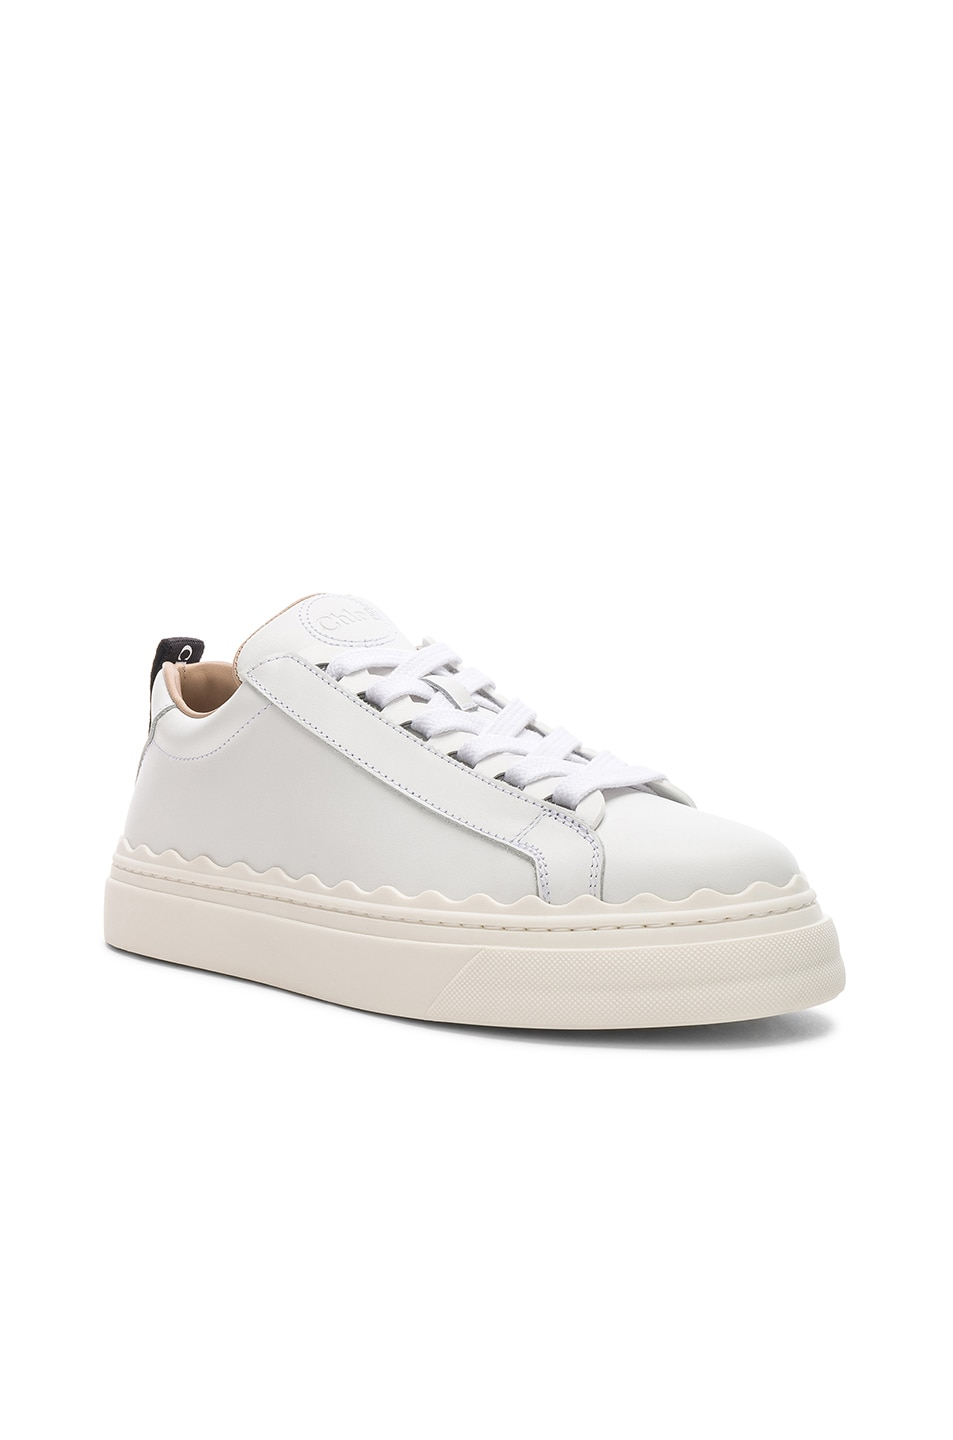 Image 2 of Chloe Low Top Sneakers in White